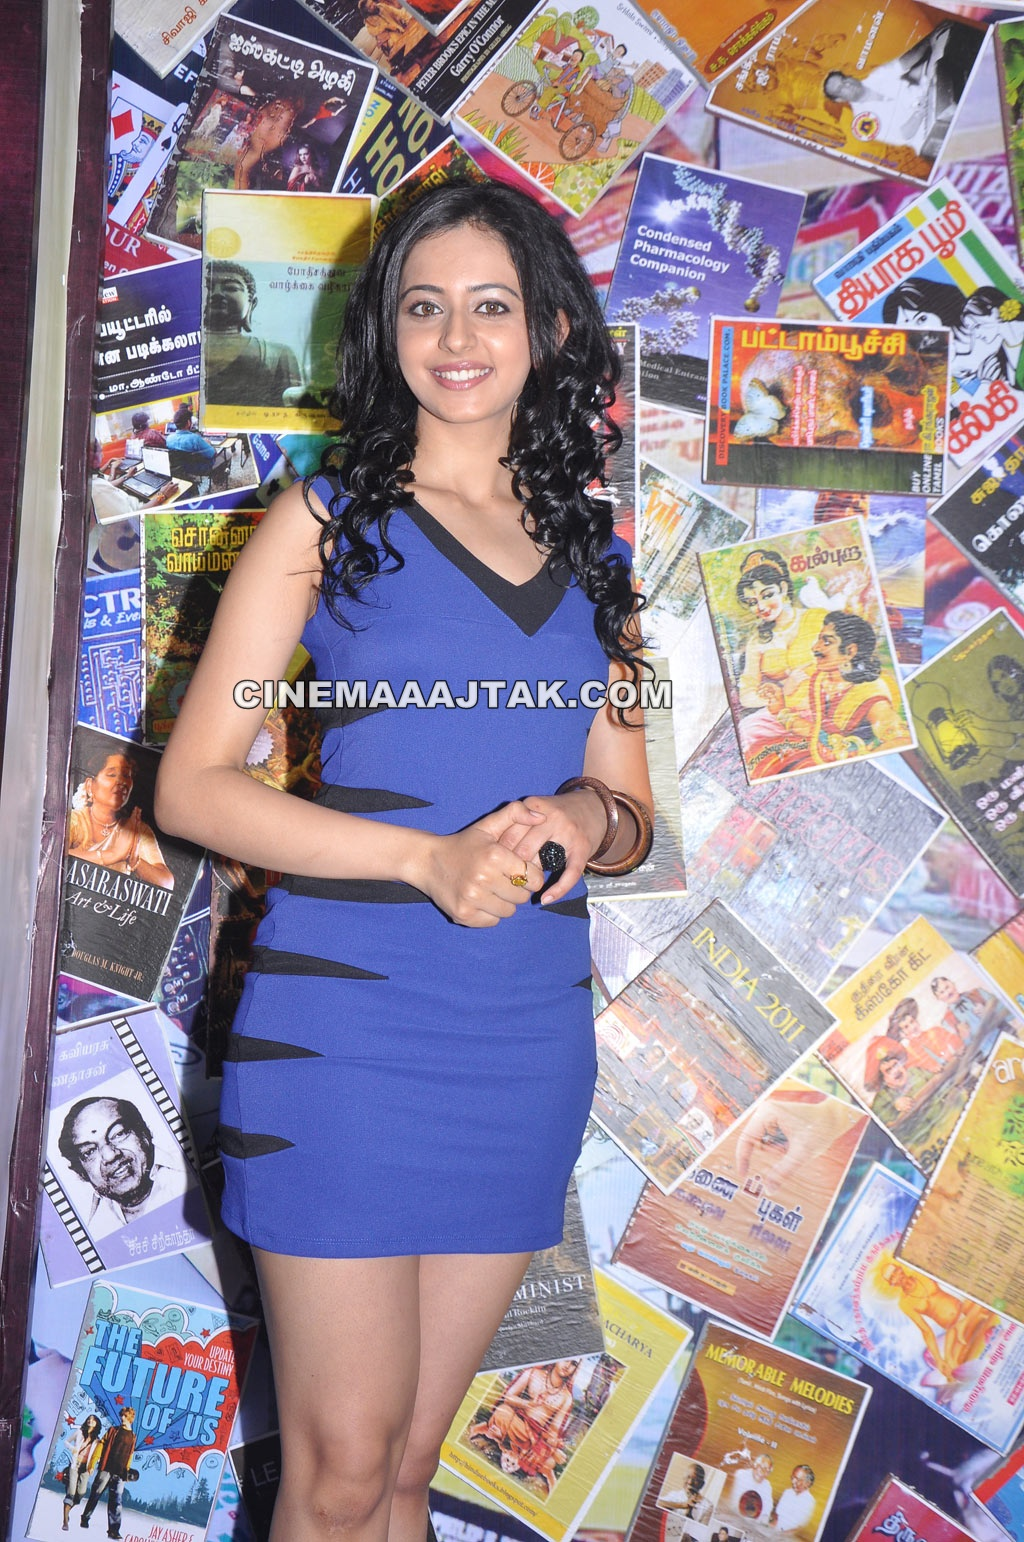 https://4.bp.blogspot.com/-z9V36Onh1Ak/T56PZJxv2DI/AAAAAAAADP8/ry_gP9fVQRM/s1600/Rakul+Preet+Singh+at+Puthagam+Movie+Launch+New+Latest+Images+(5).jpg